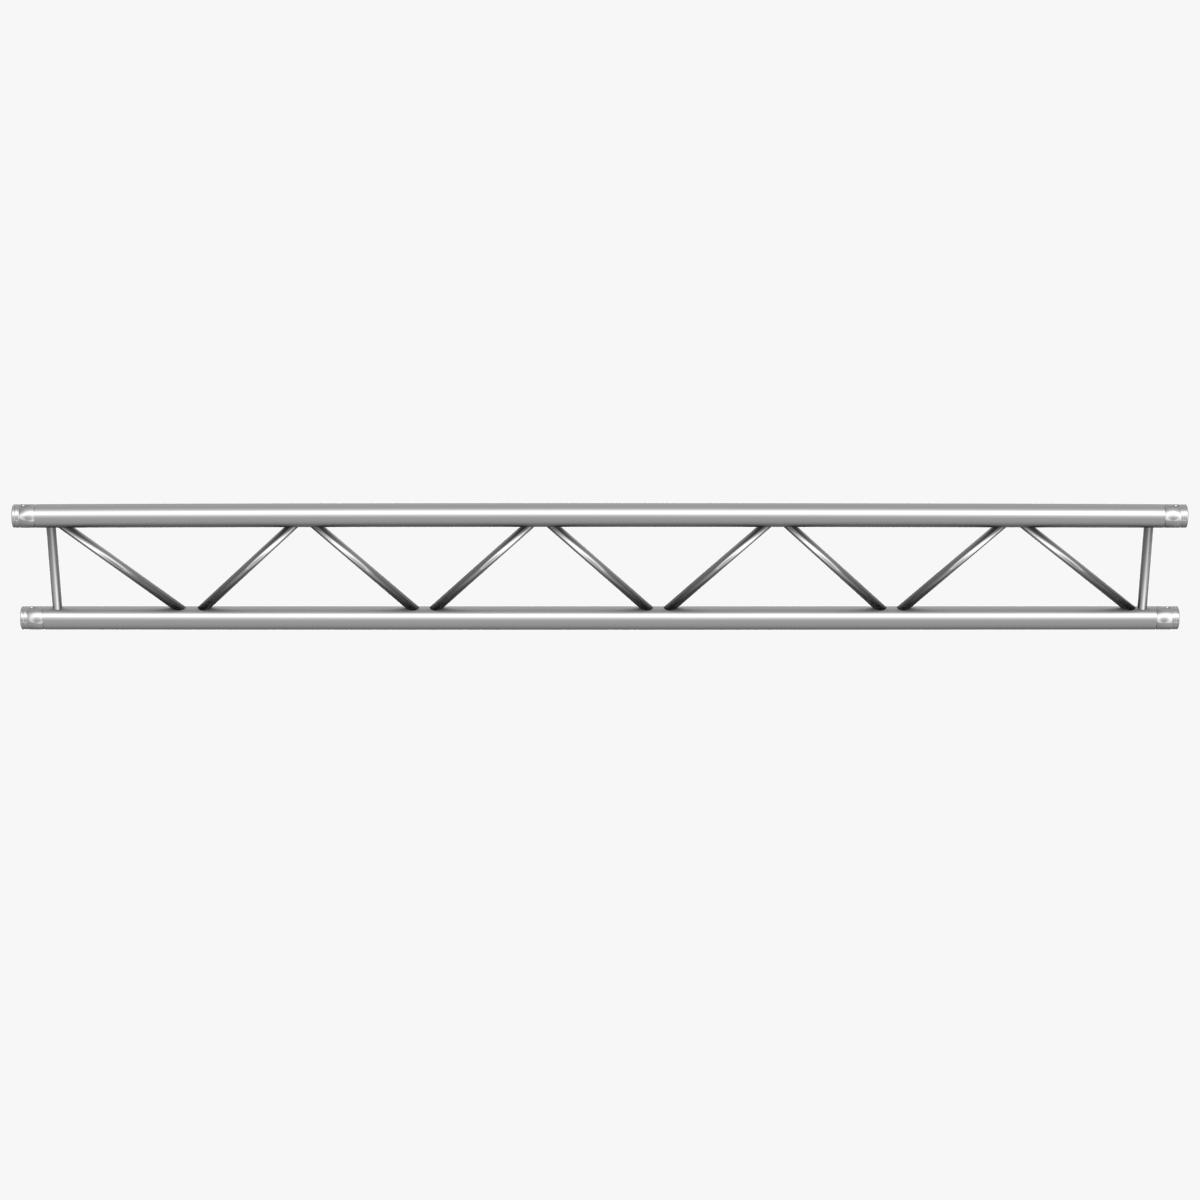 beam trusses (collection 24 modular pieces) 3d model 3ds max dxf fbx bmp blend c4d dae other obj 268724